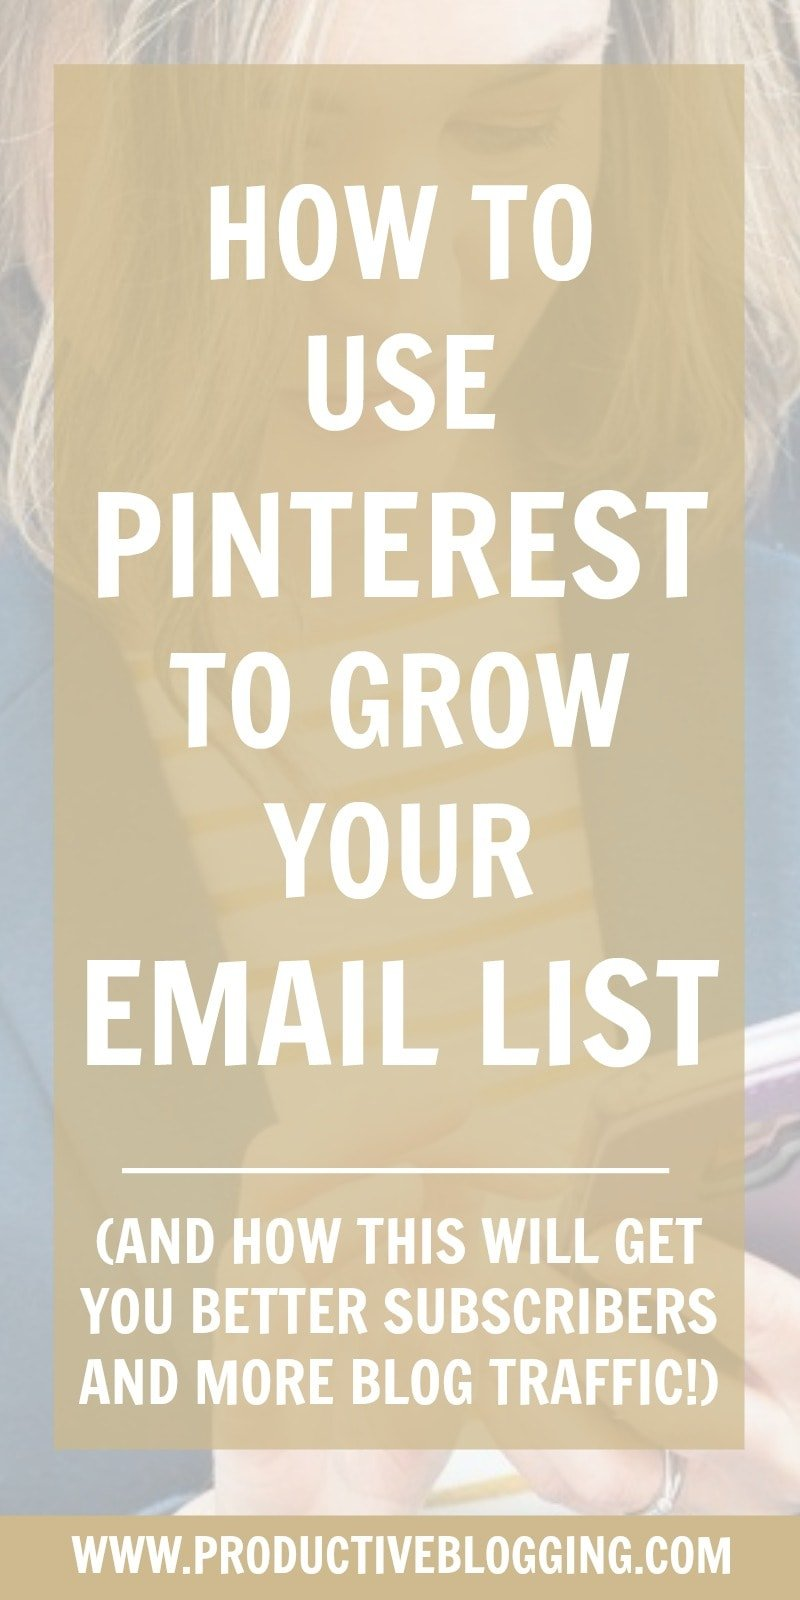 Pinterest is a great way to grow your blog traffic, but did you know Pinterest is also a great way to grow your EMAIL LIST? Using Pinterest in this way will not only grow your email list with the RIGHT subscribers, it will also drive EVEN MORE traffic to your blog. Here's how… #pinterest #pinteresttips #emailmarketing #emailmarketingtips #optin #optinoffer #contentupgrade #leadmagnet #emaillist #subscribers #convertkit #bloggingtips #productivitytips #productivity #productiveblogging